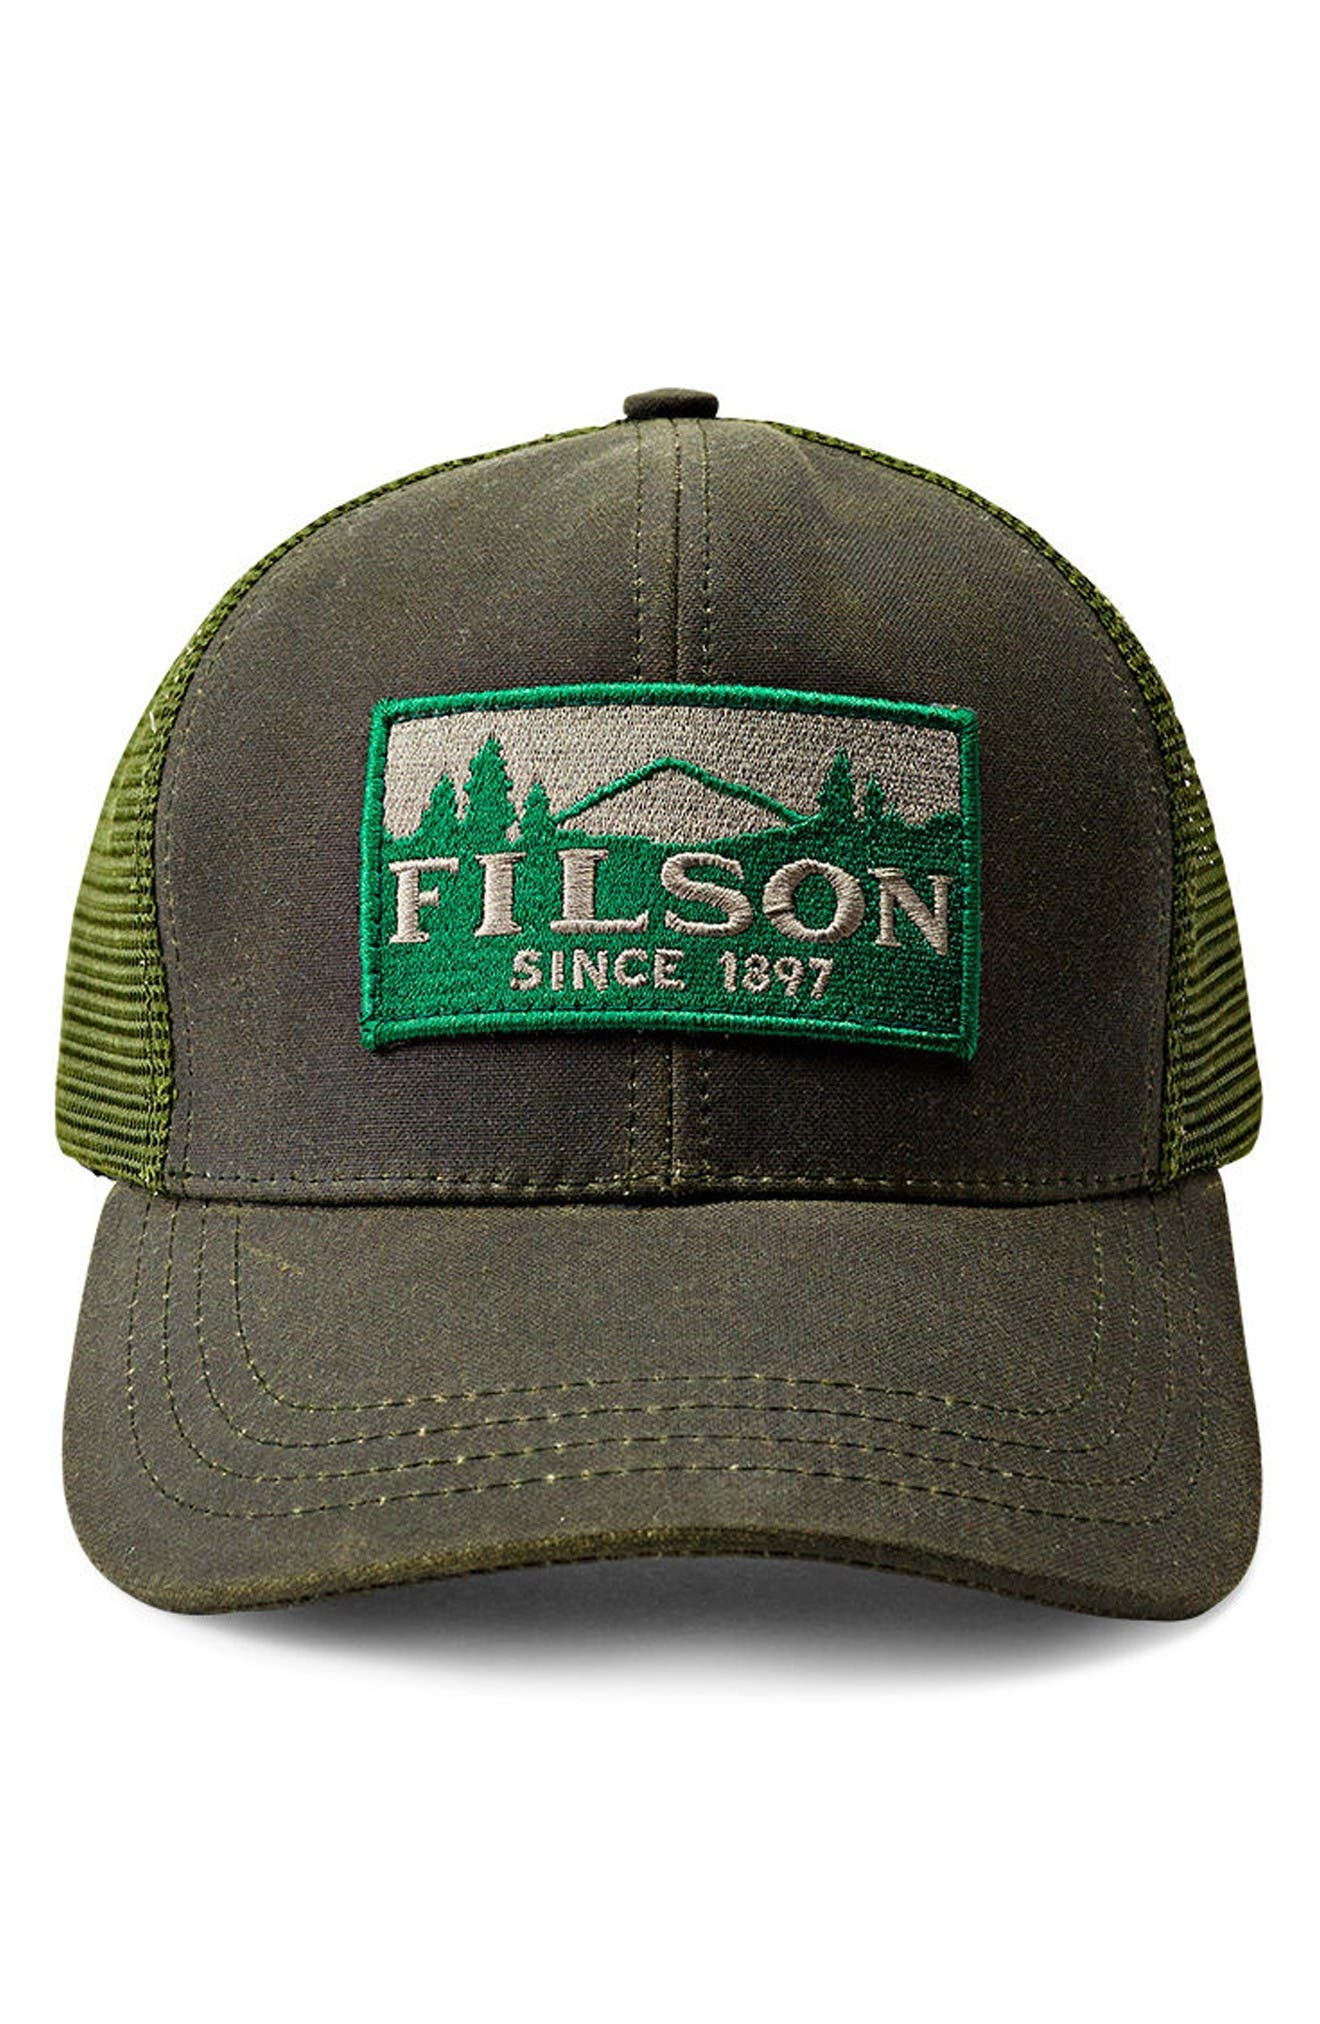 Logger Trucker Hat,                             Main thumbnail 1, color,                             Otter Green